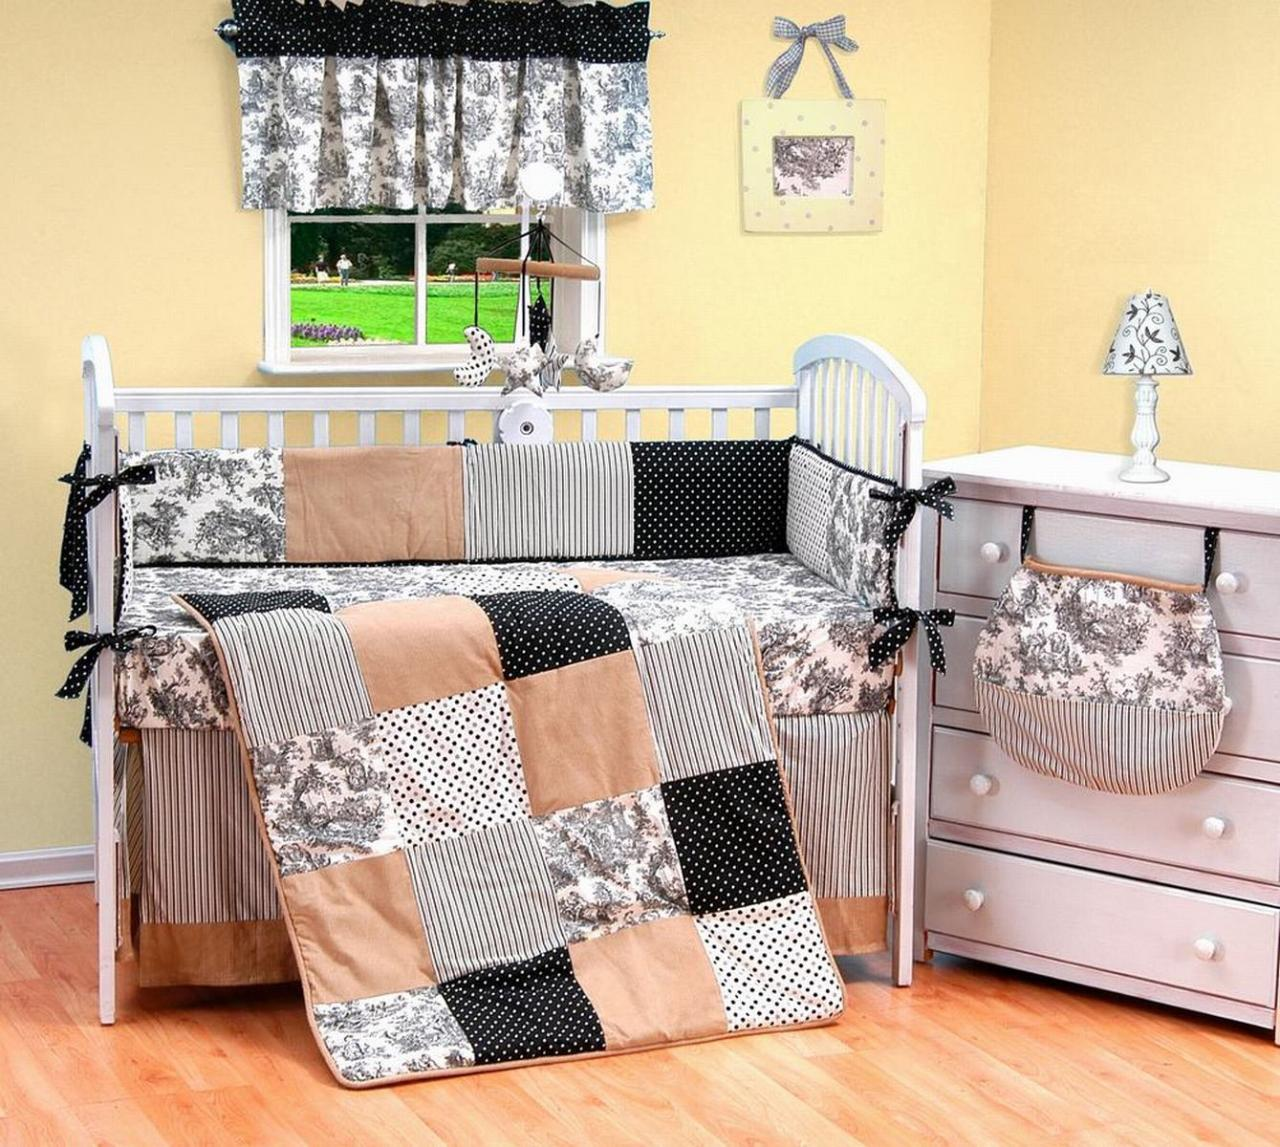 New country home inc infant crib bedding design ready for fly with me planes sciox Image collections